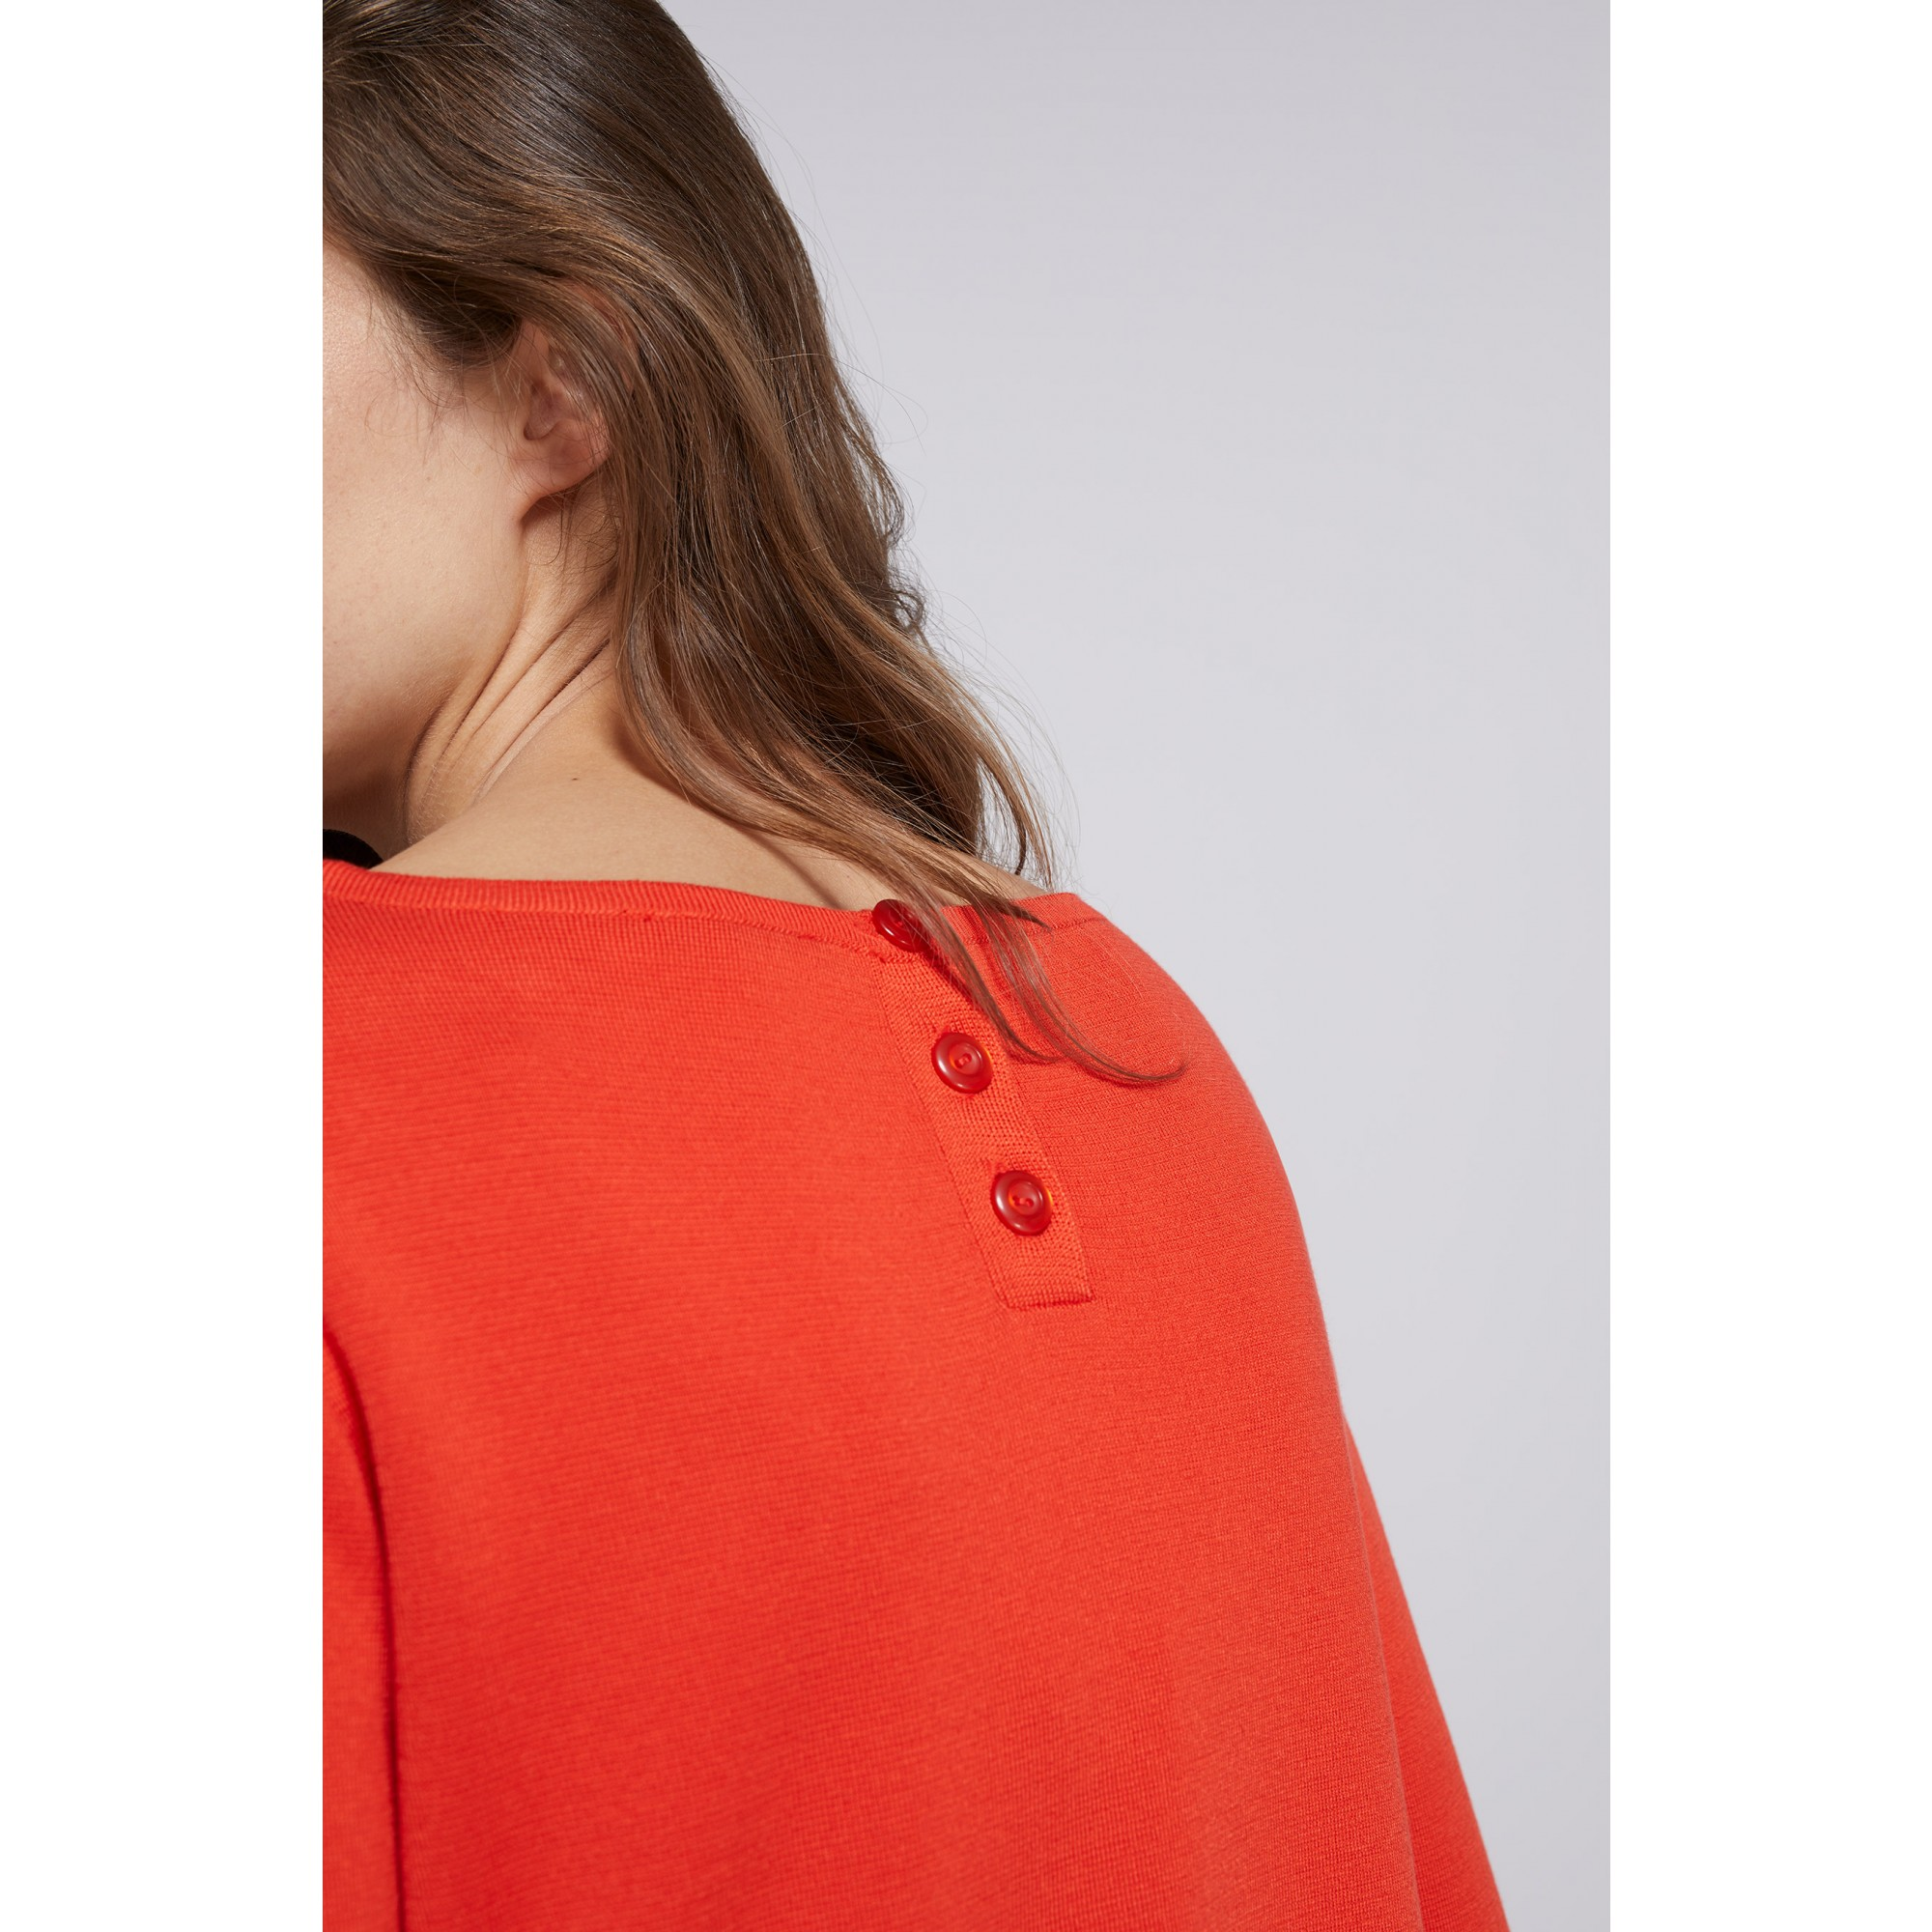 Pullover, rot 91011019-0538 3